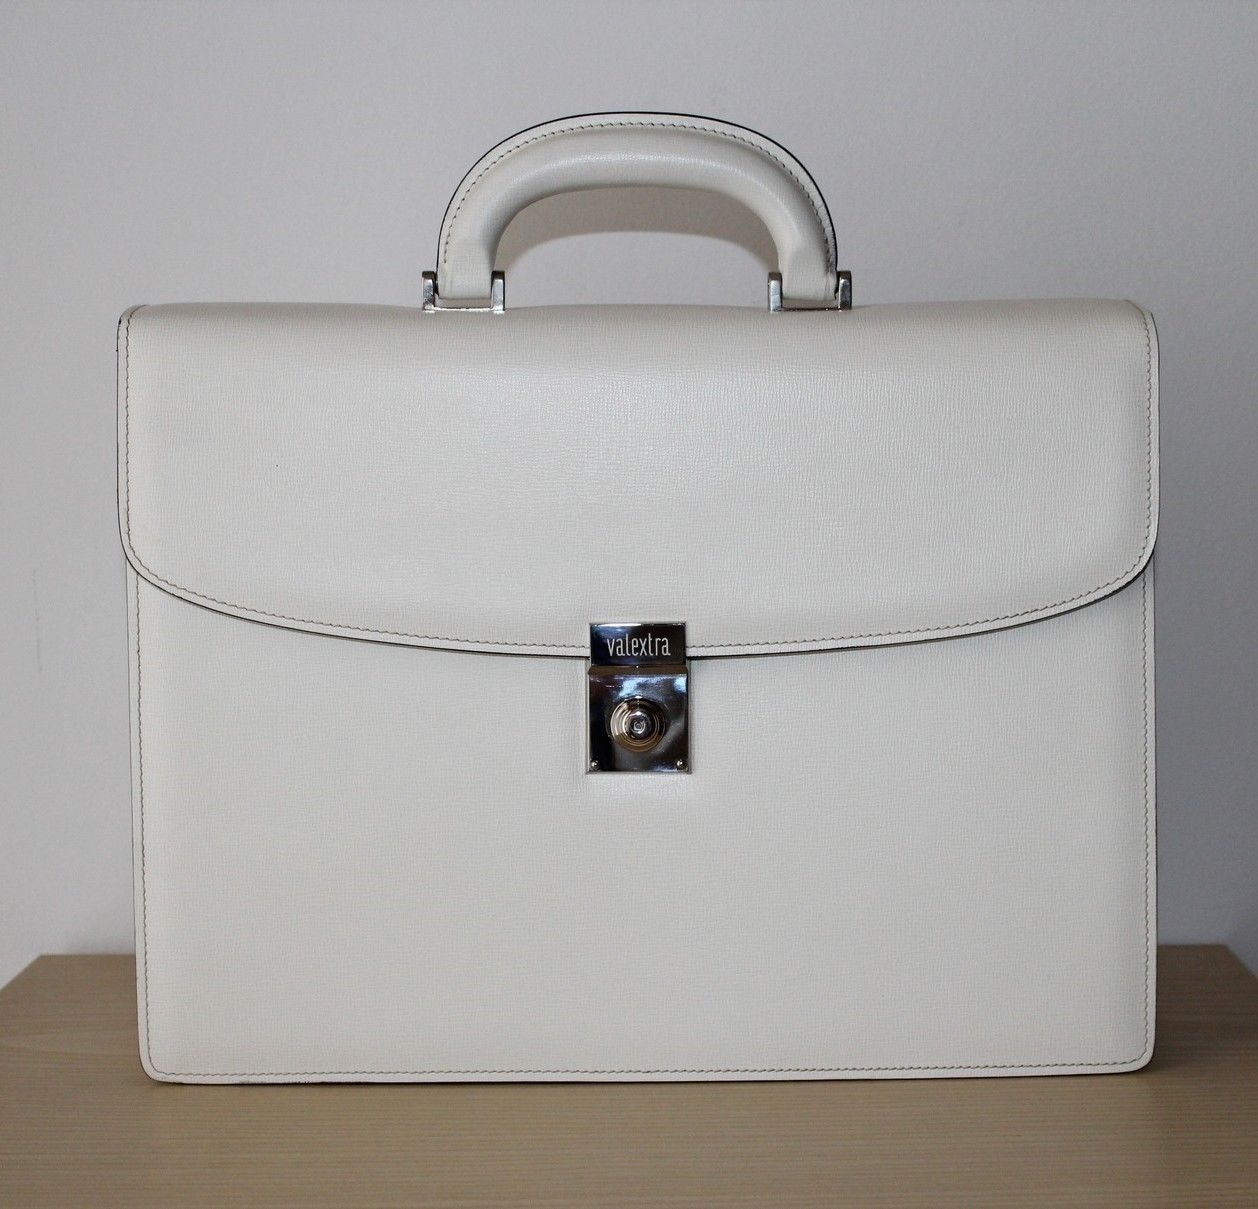 5c1b68c7557 Authentic Valextra classic double gusset briefcase hand made real leather  NEW